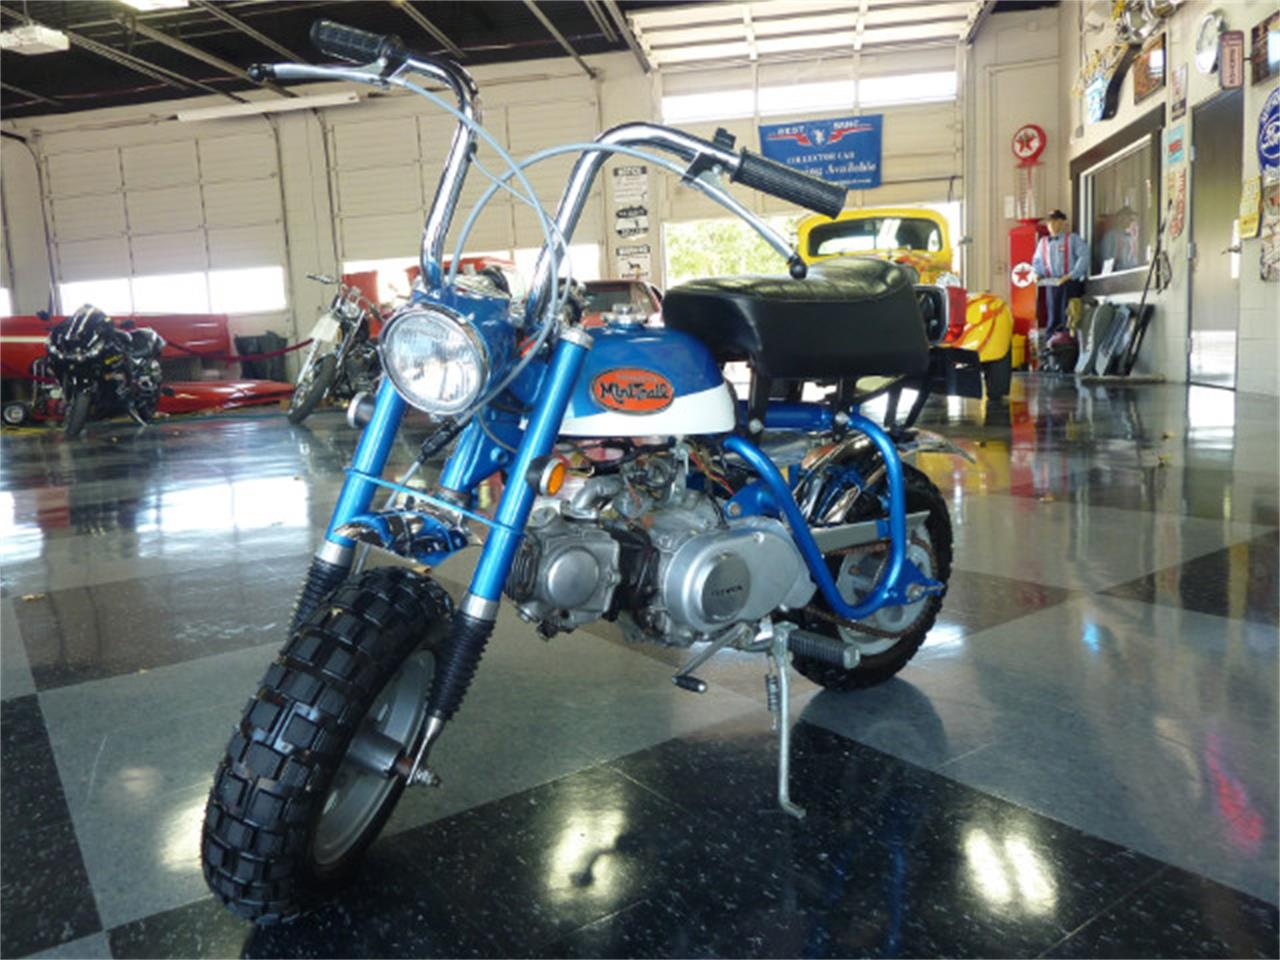 1970 Honda Motorcycle For Sale Cc 888704 Vin Decoder Large Picture Of 70 J1q8